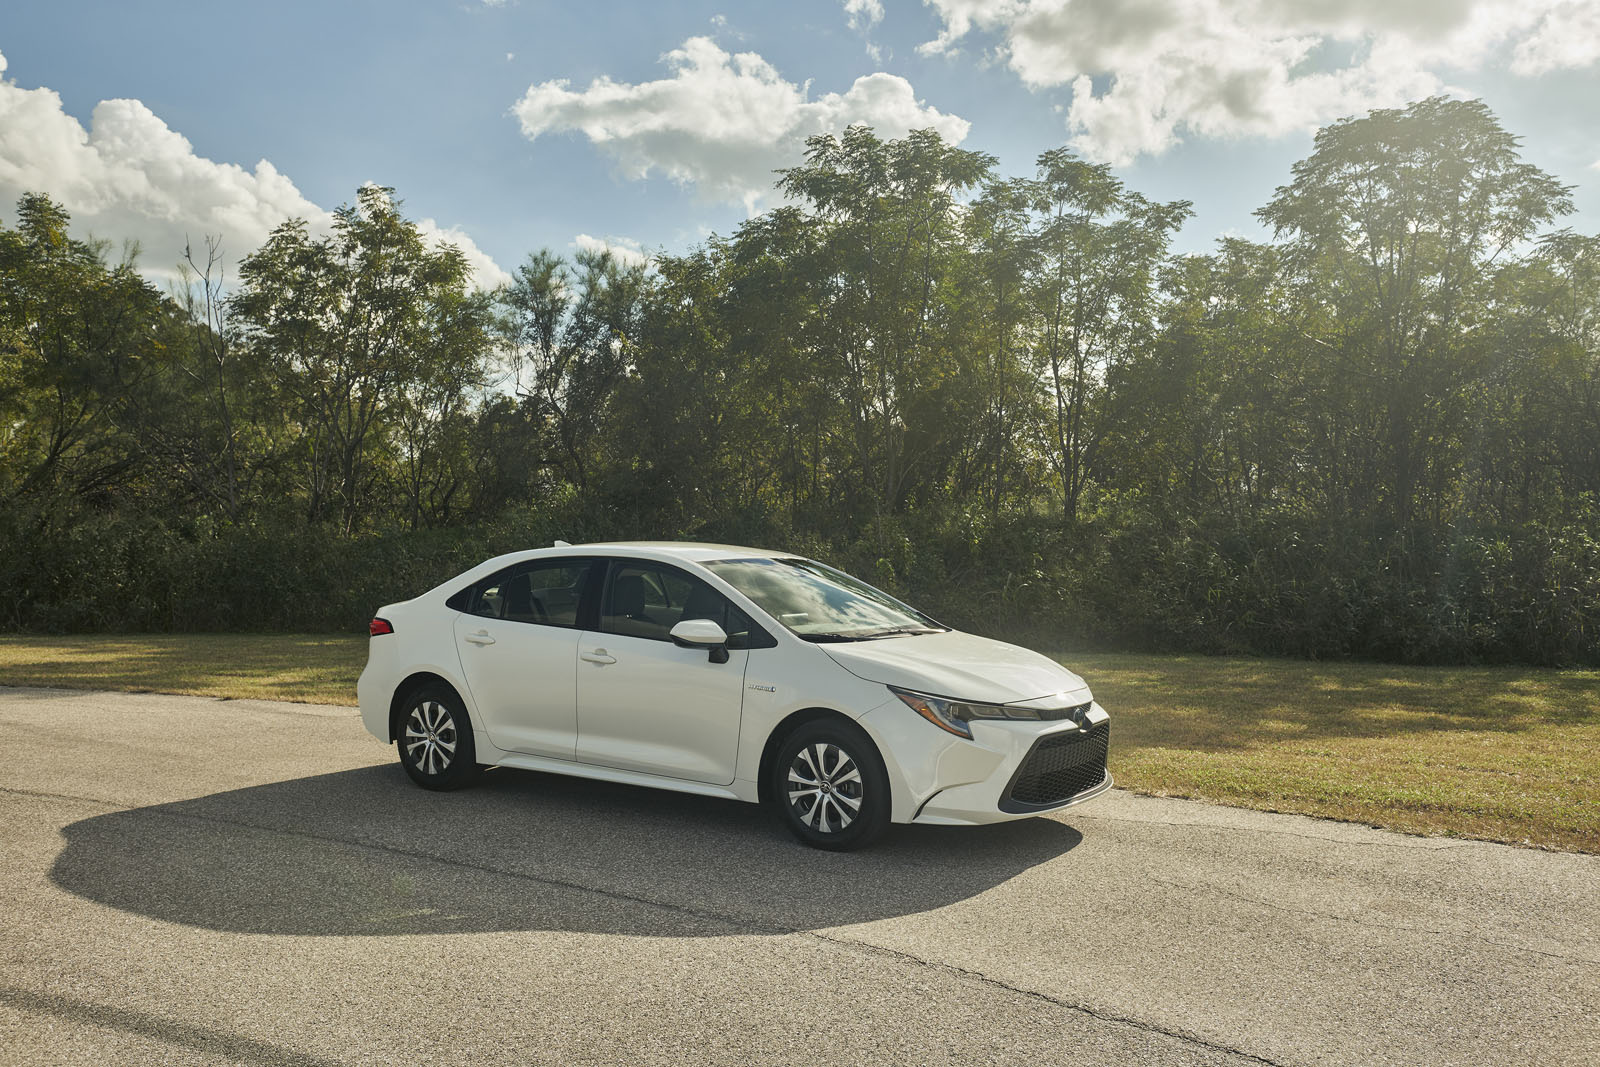 Toyota Corolla Mpg >> 2020 Toyota Corolla Hybrid Debuts with Prius Underpinnings » AutoGuide.com News